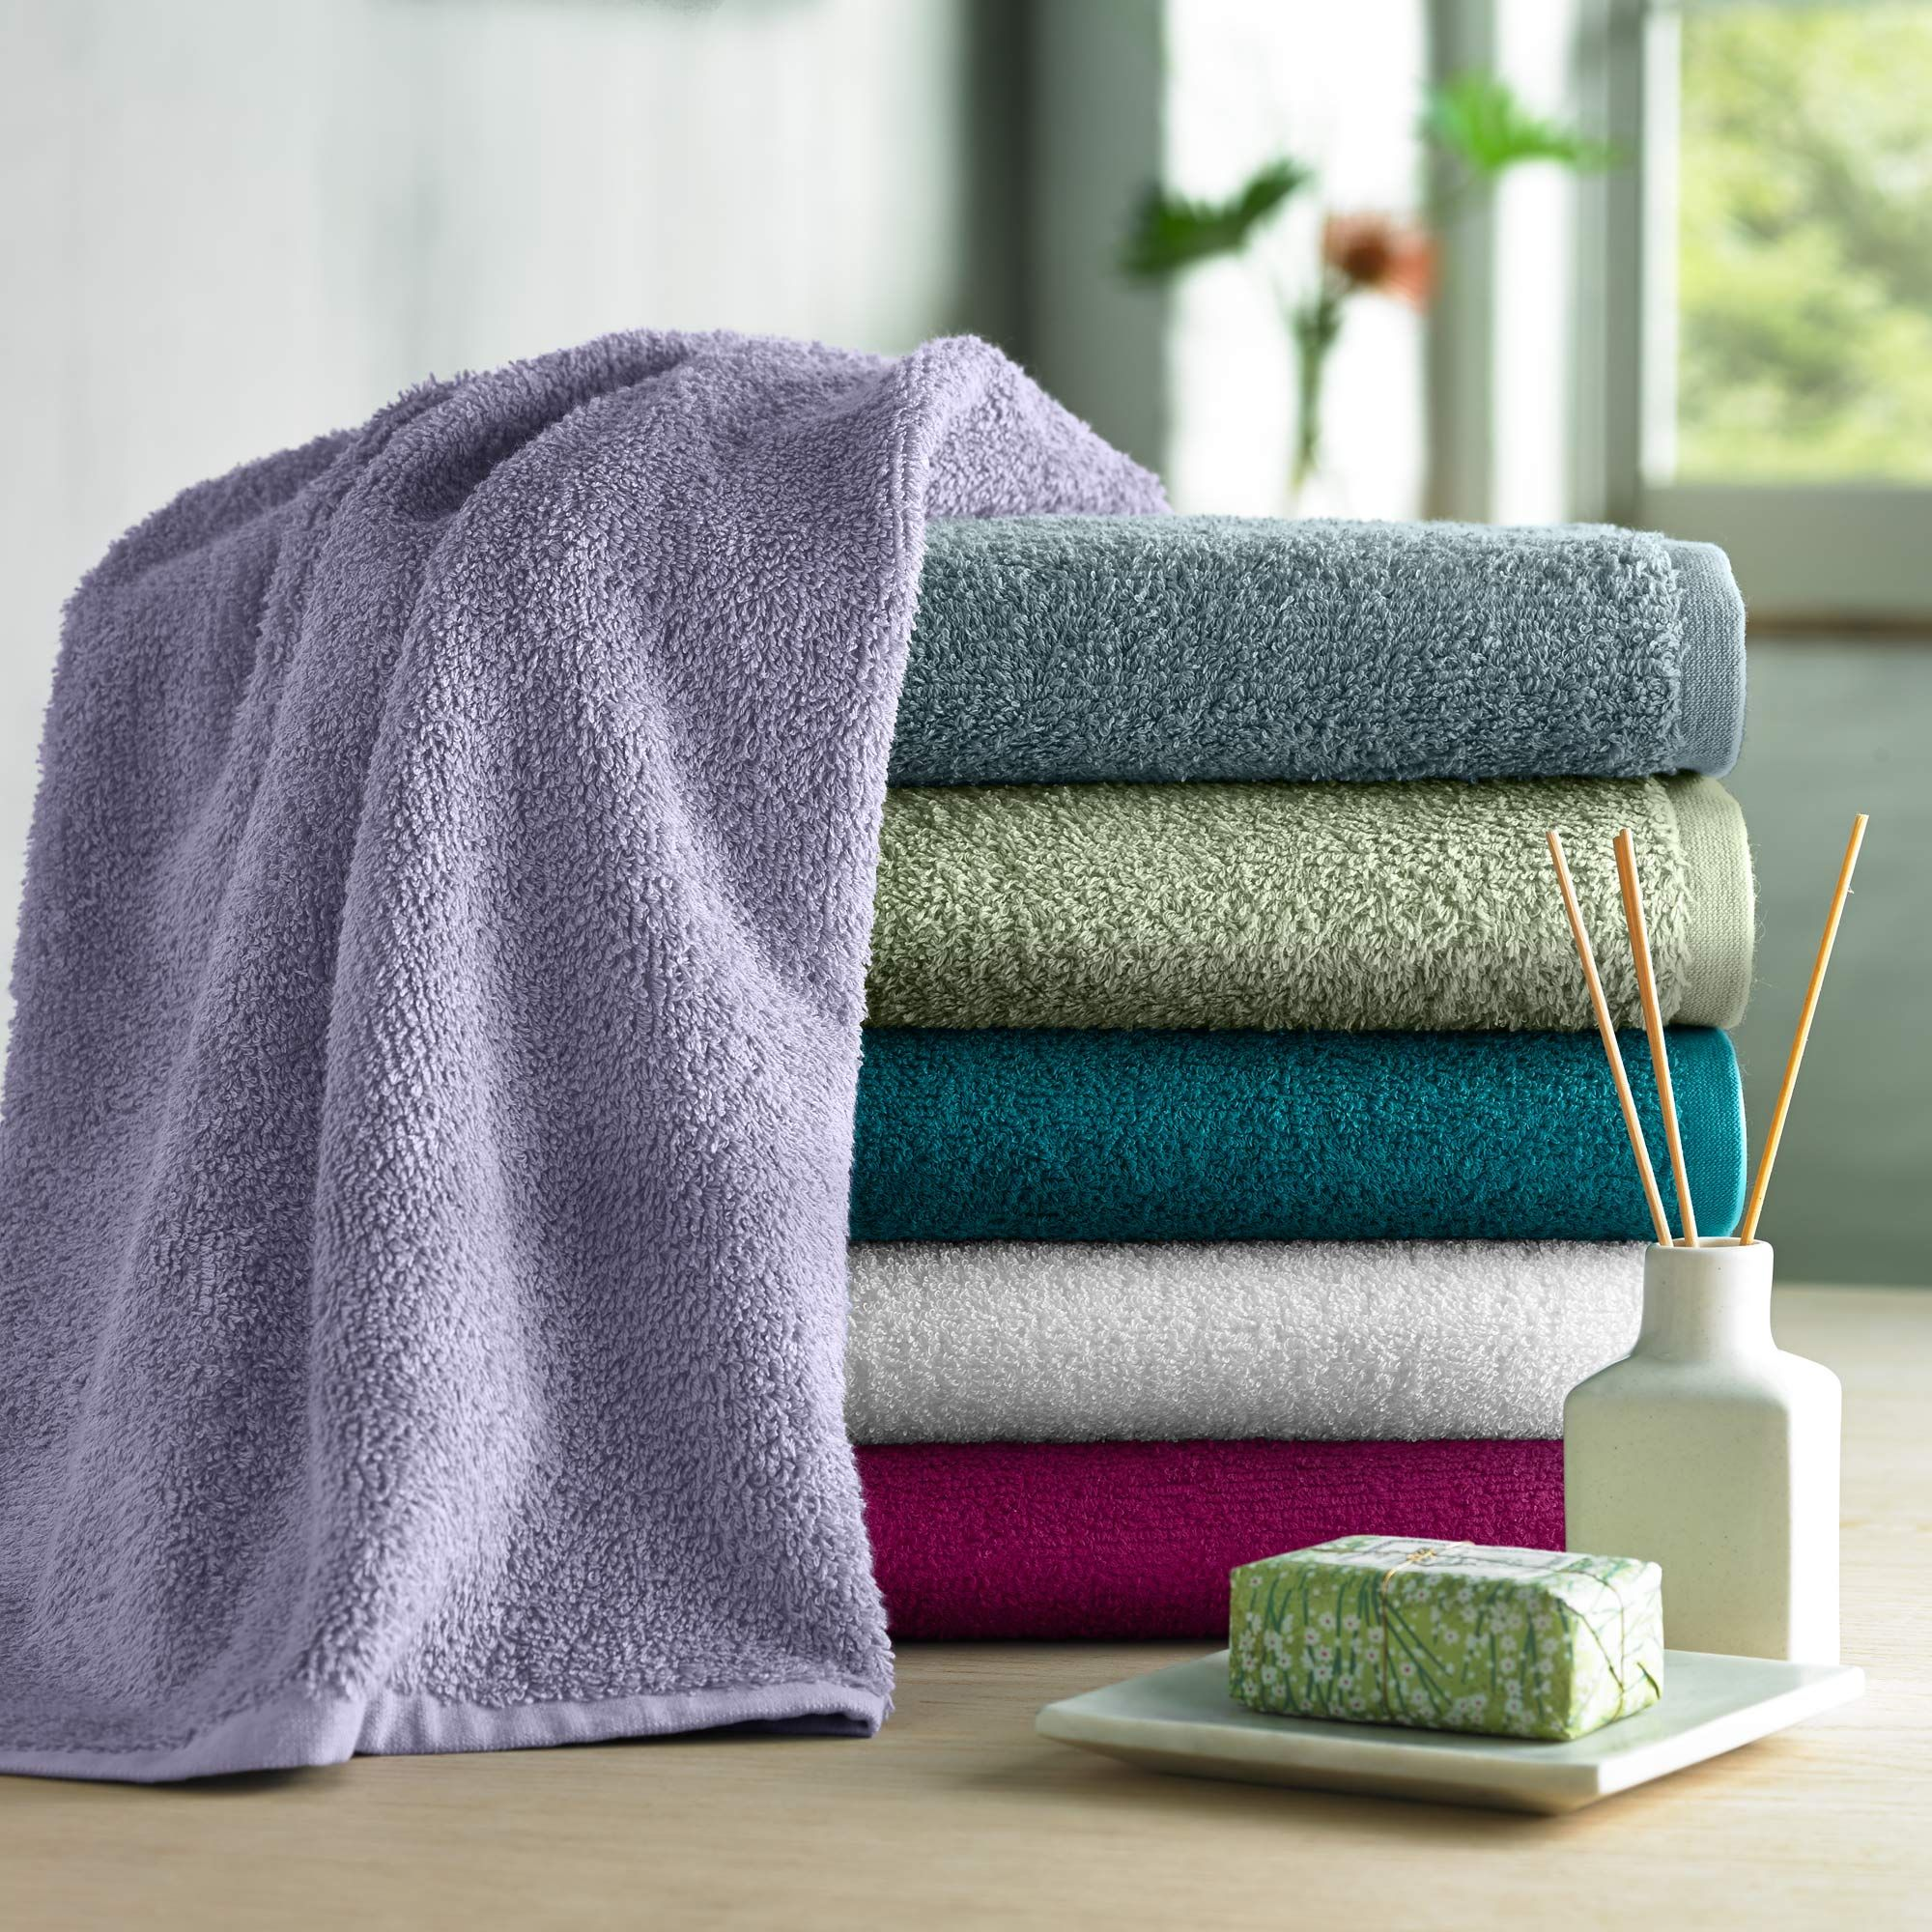 Under the Canopy GOTS certified organic cotton spa hair u0026 bath towels. $19.99  & Under the Canopy GOTS certified organic cotton spa hair u0026 bath ...